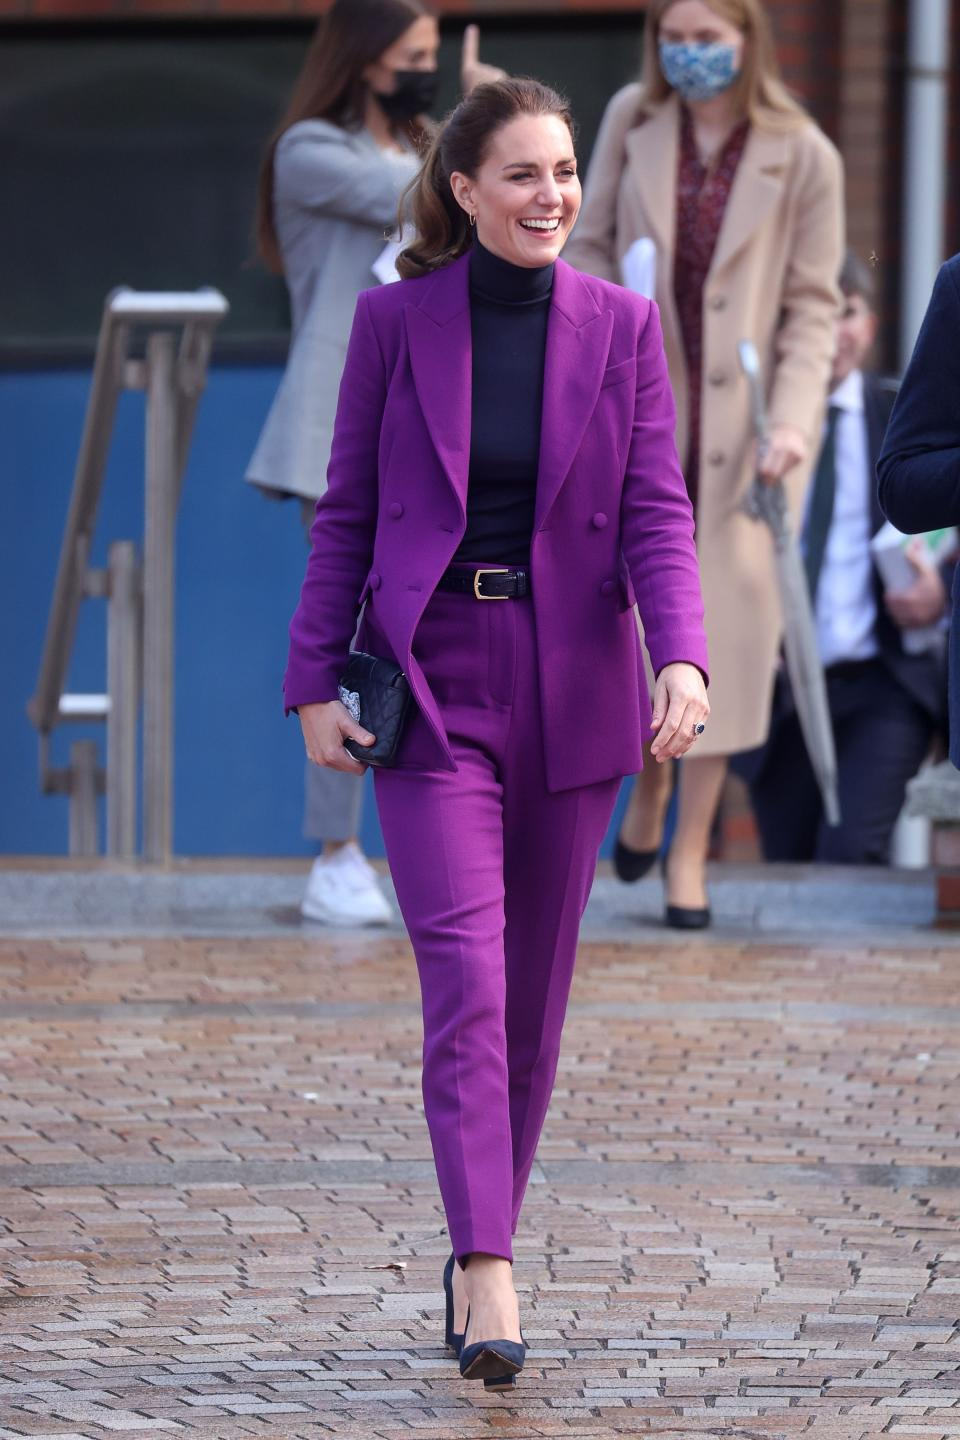 Catherine, Duchess of Cambridge wears a purple suit at the Ulster University Magee Campus on September 29, 2021 in Londonderry, Northern Ireland. (Photo by Pool/Samir Hussein/WireImage)